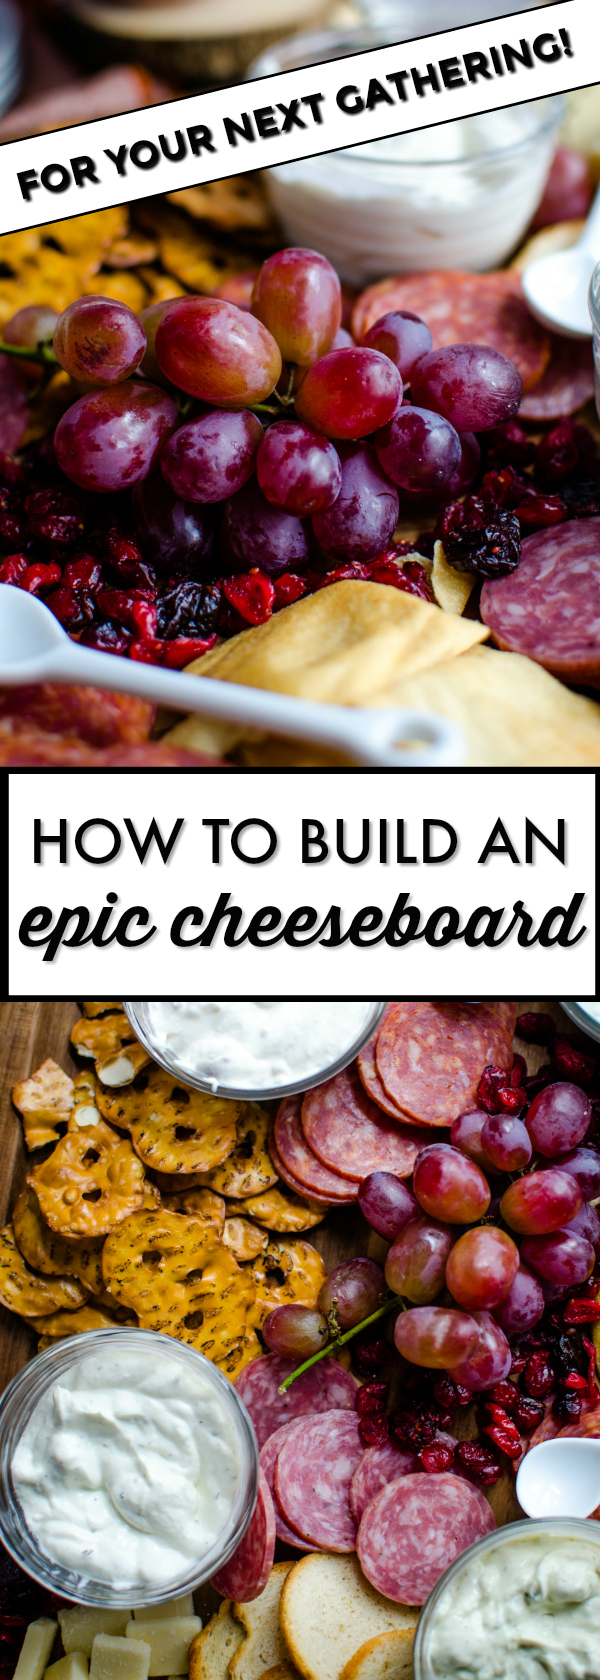 When hosting a gathering, a cheese board is always a crowd favorite. Build your epic cheese board with your favorite cheeses, cured meats, crackers, and bread. You can't go wrong!